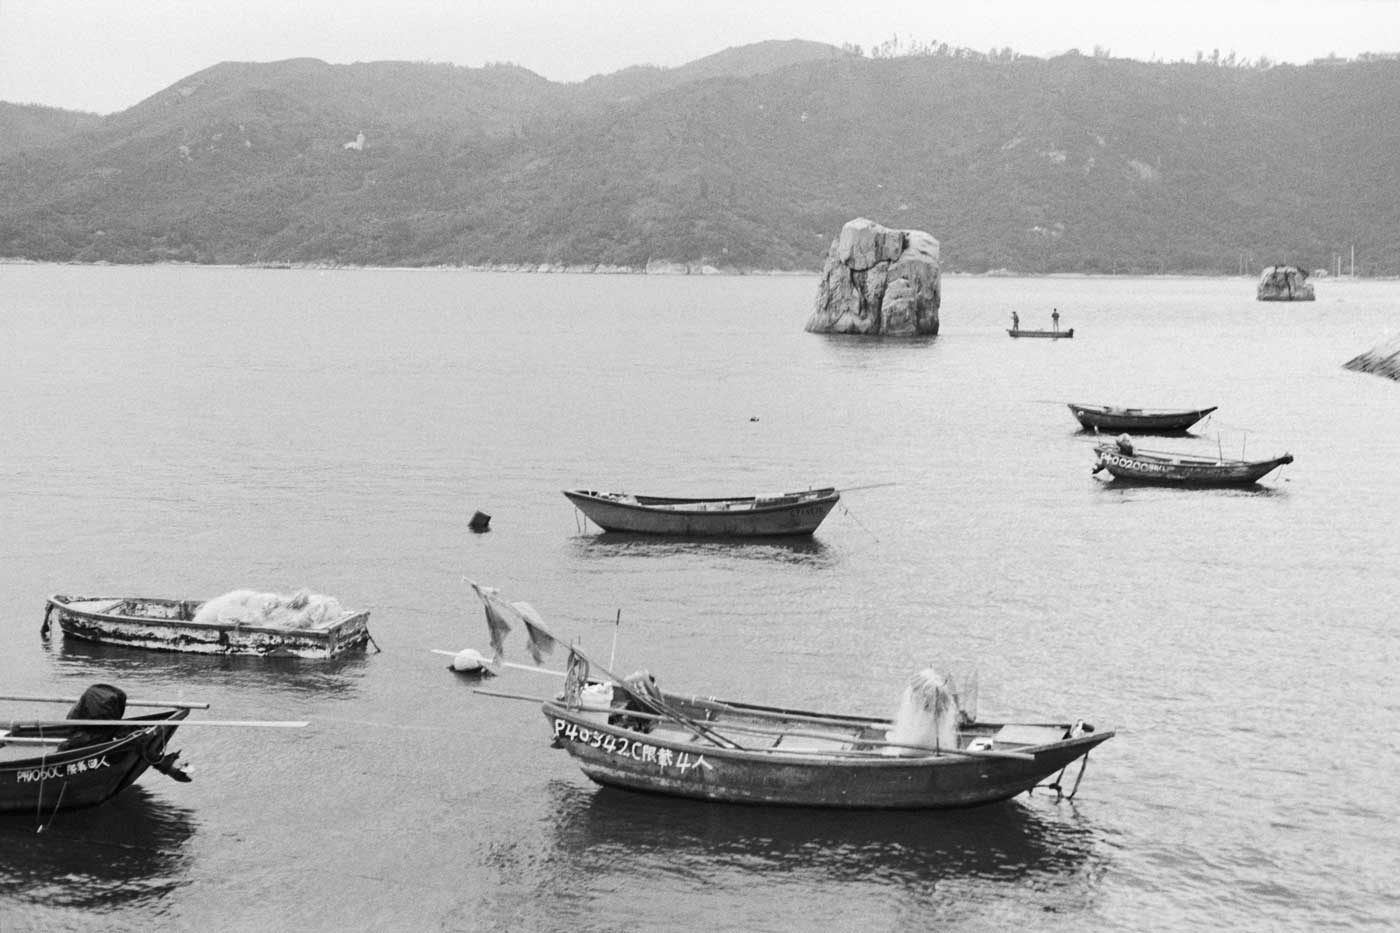 Leica-Summicron-50mm-50-f2-Rigid-Type-2-II-lens-review-double-x-rated-200-iso-kodak-eastman-boats-hk-fishing-pengchau-hong-kong-scene